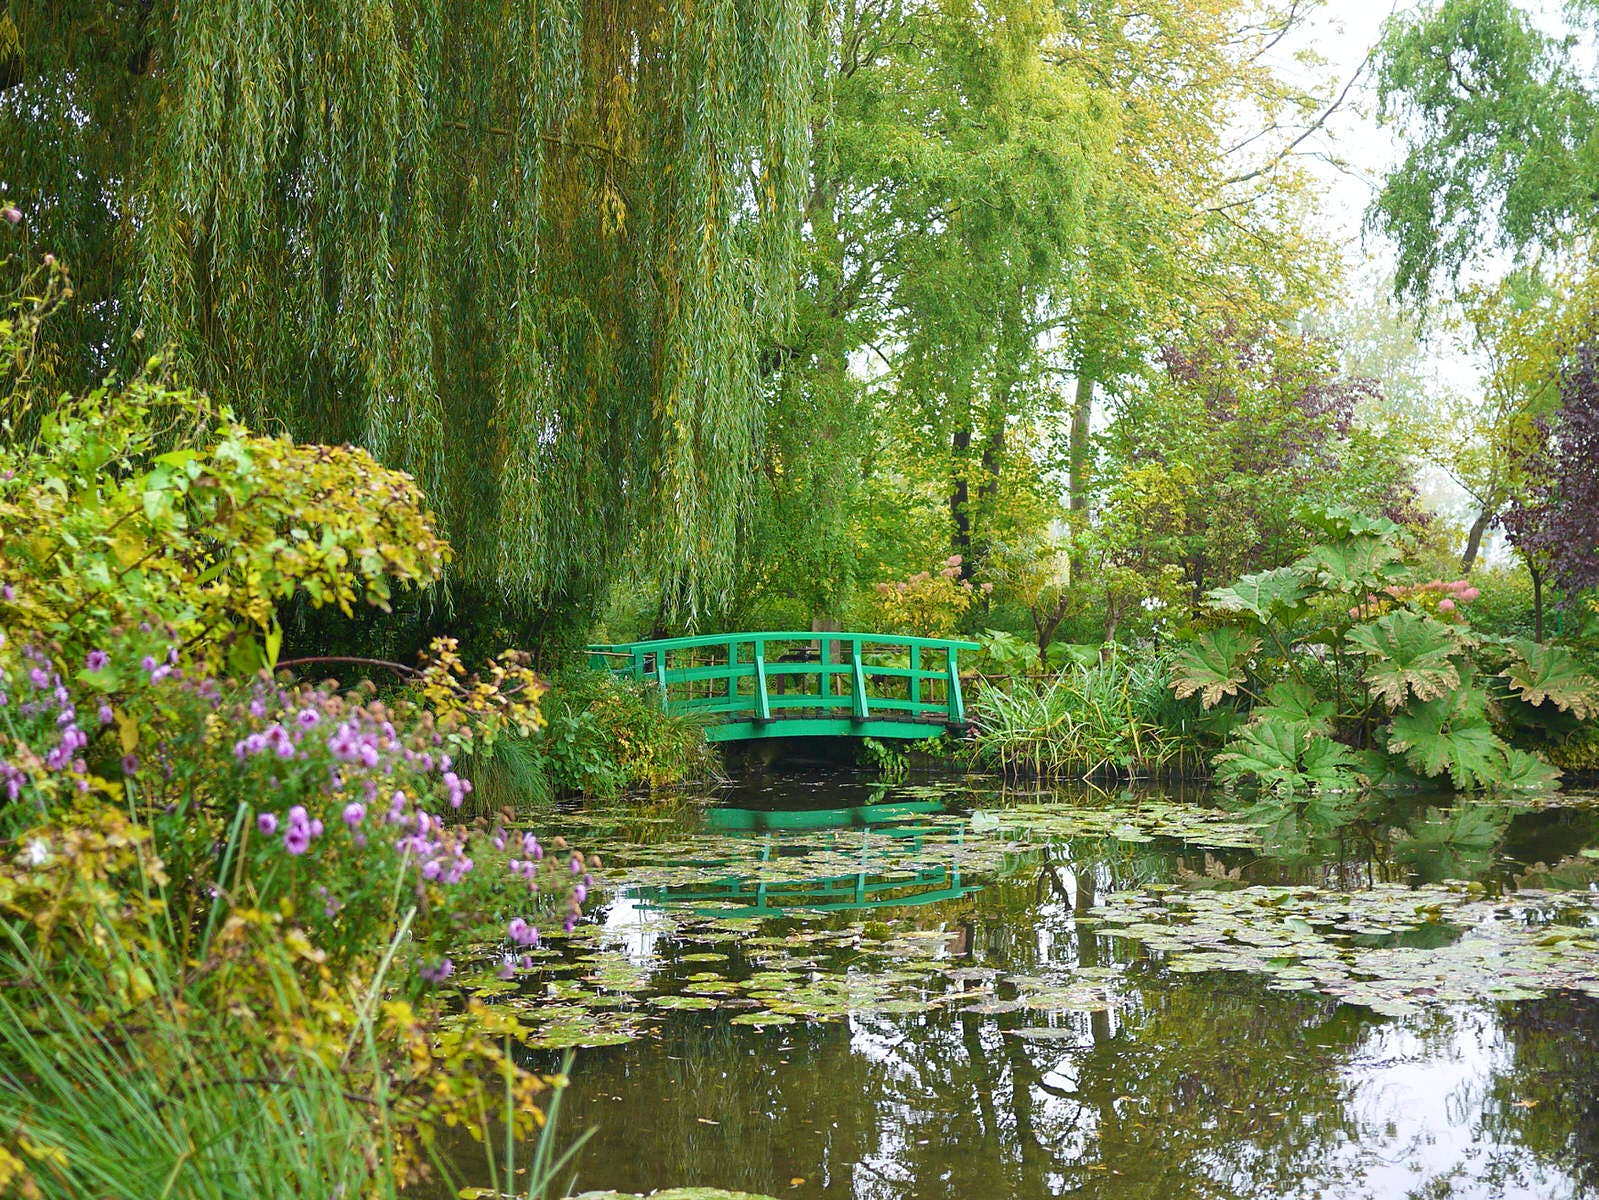 Claude Monet's Garden of Giverny, with the iconic green Japanese bridge reflecting in the water lilies pond.